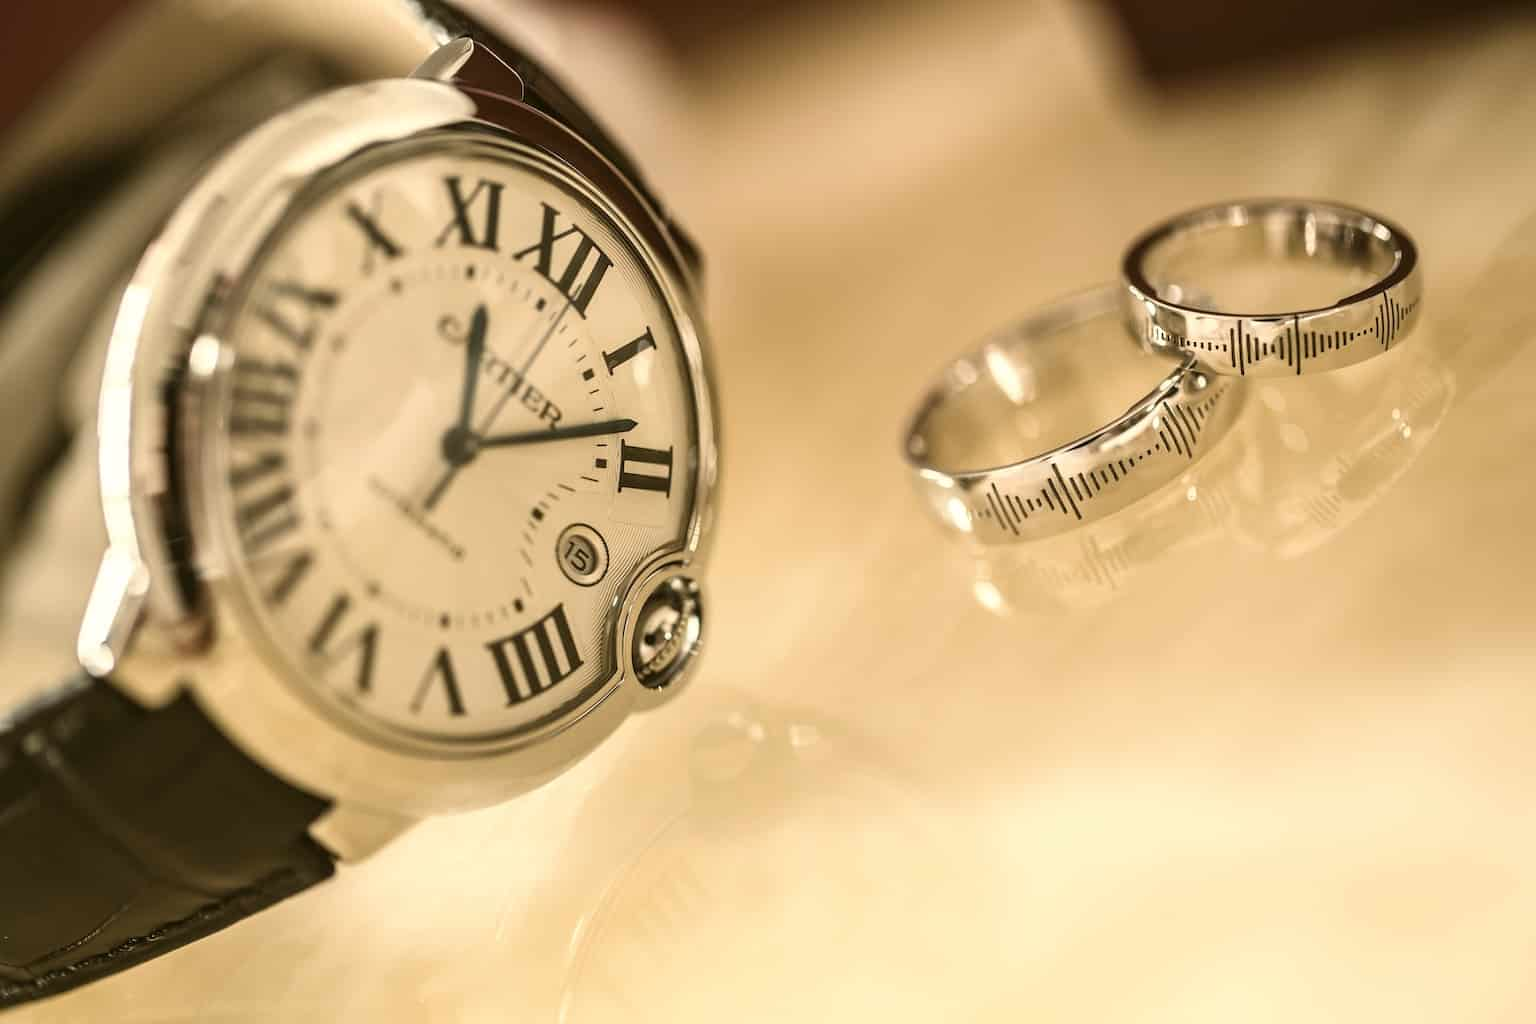 watch_&_wedding_rings_divorce_Asia_law_Network